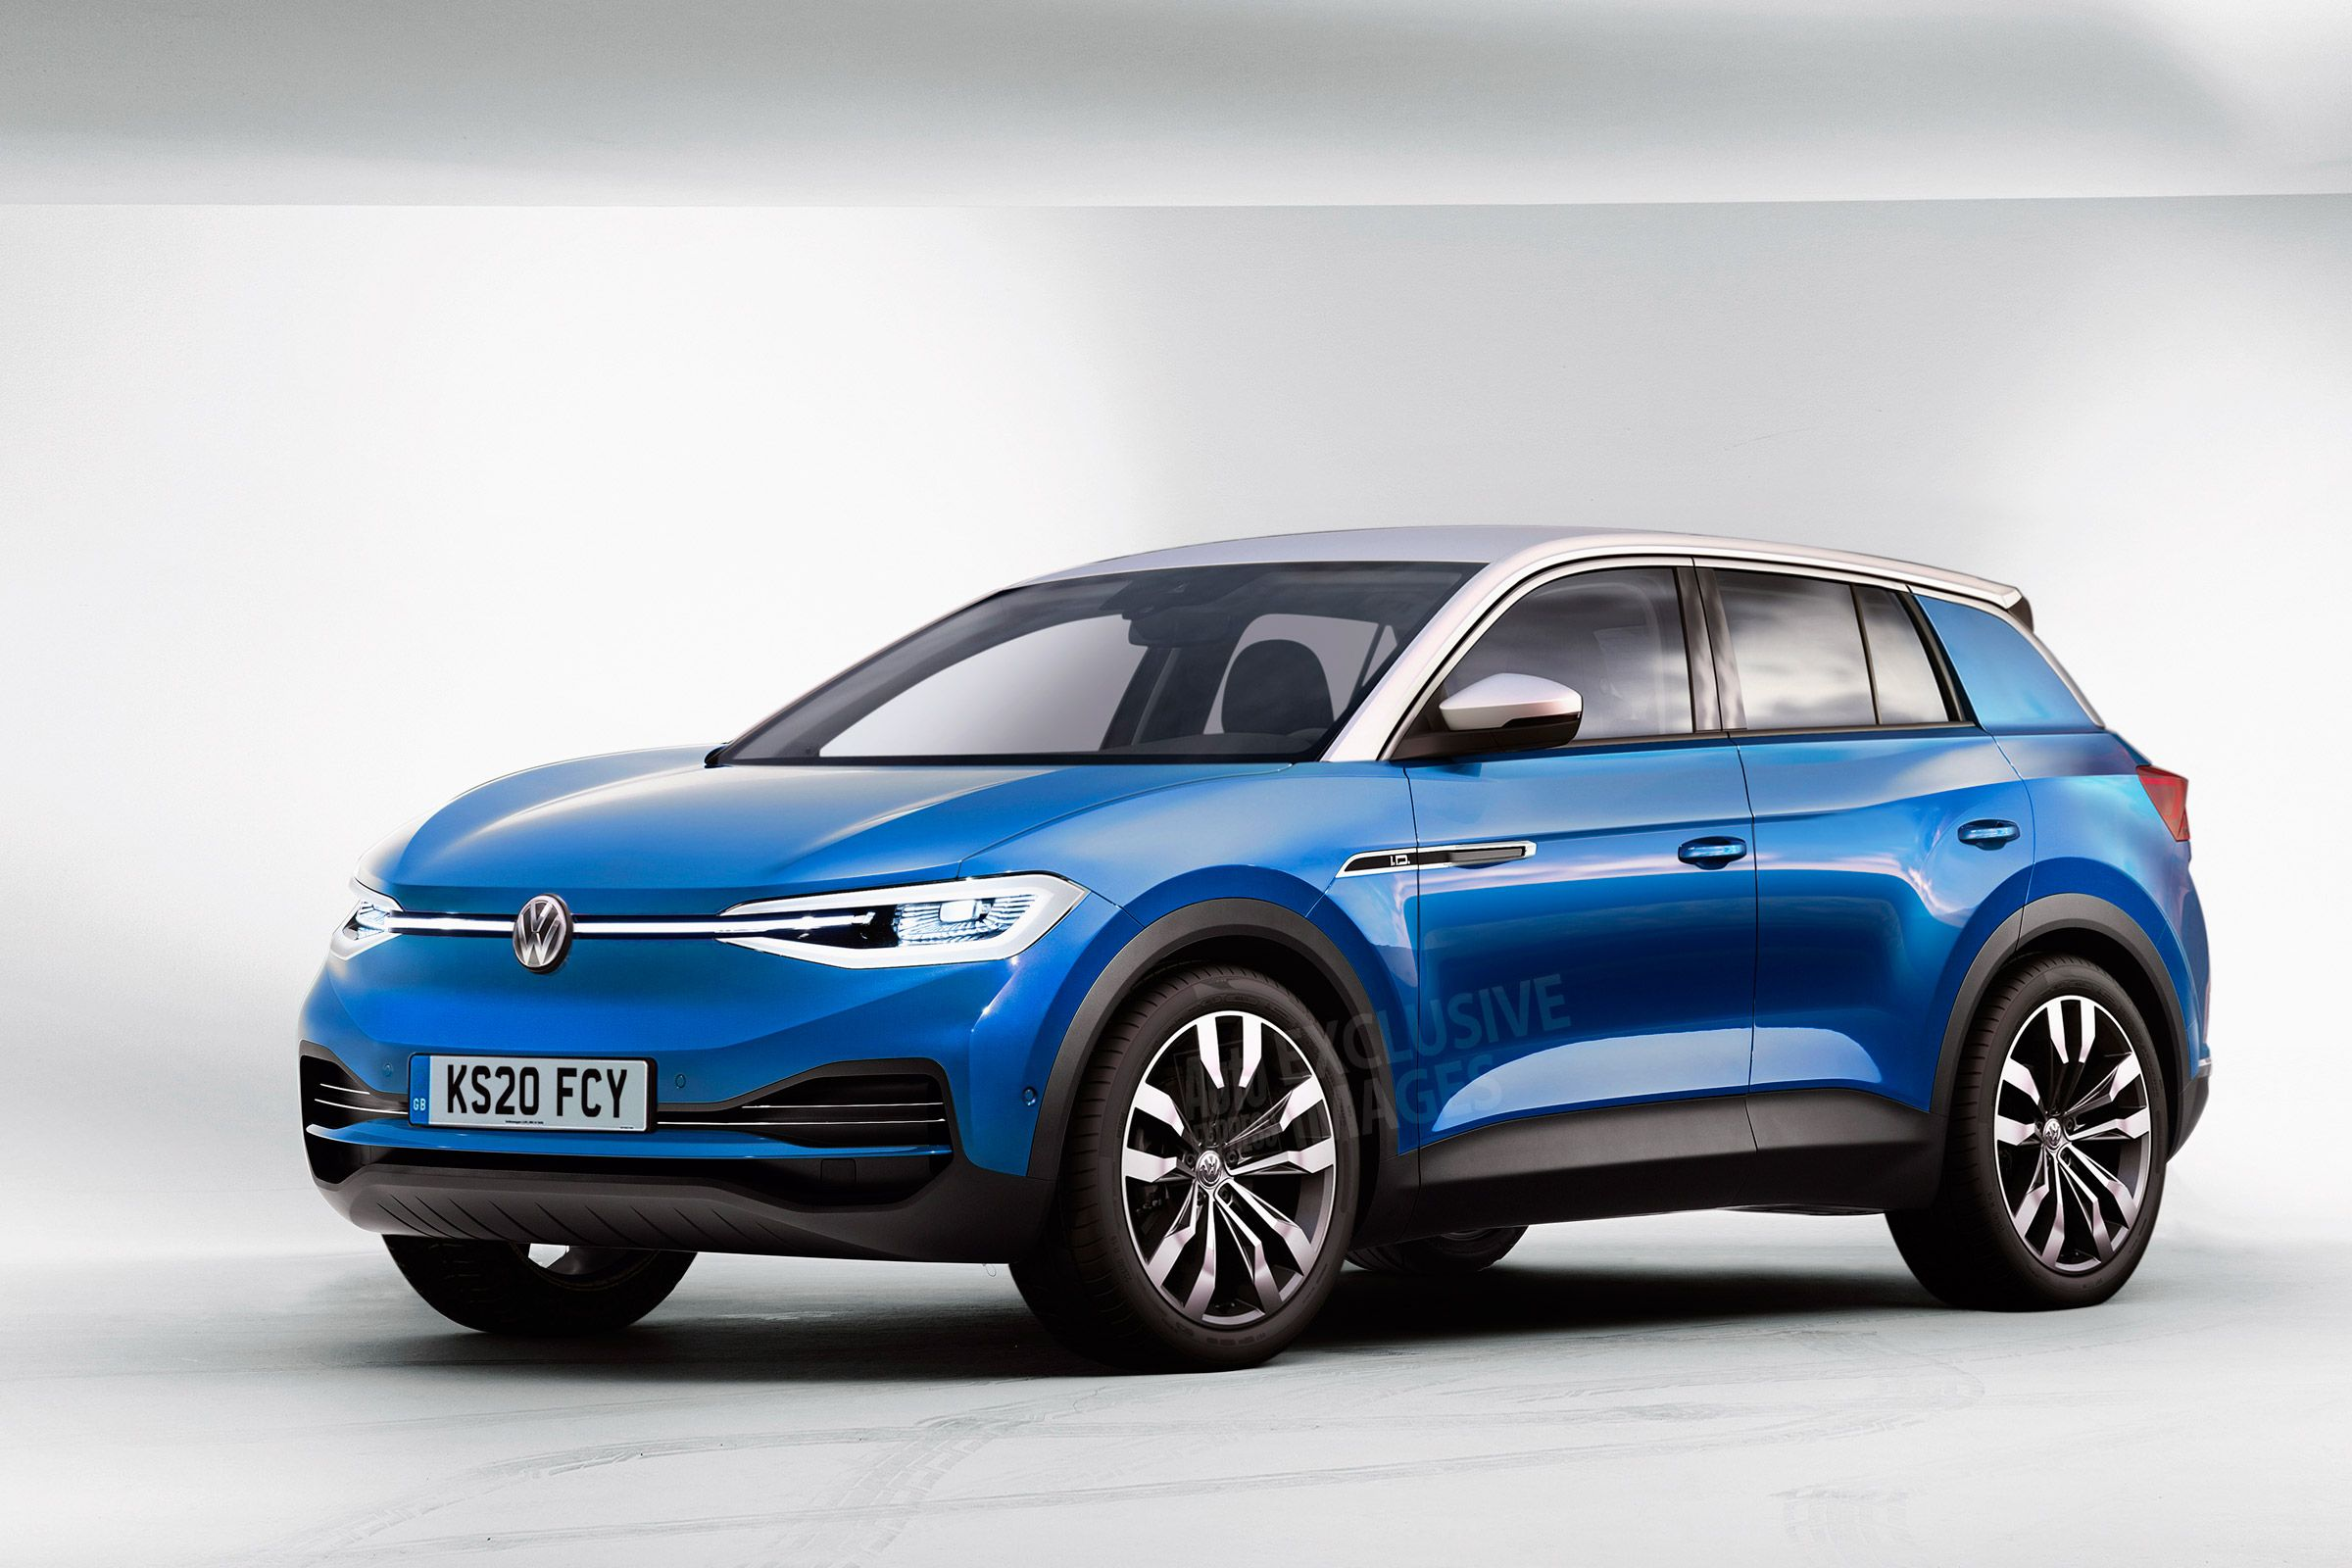 Vw Scirocco 2020 Check More At Http Www Autocars1 Club Vw